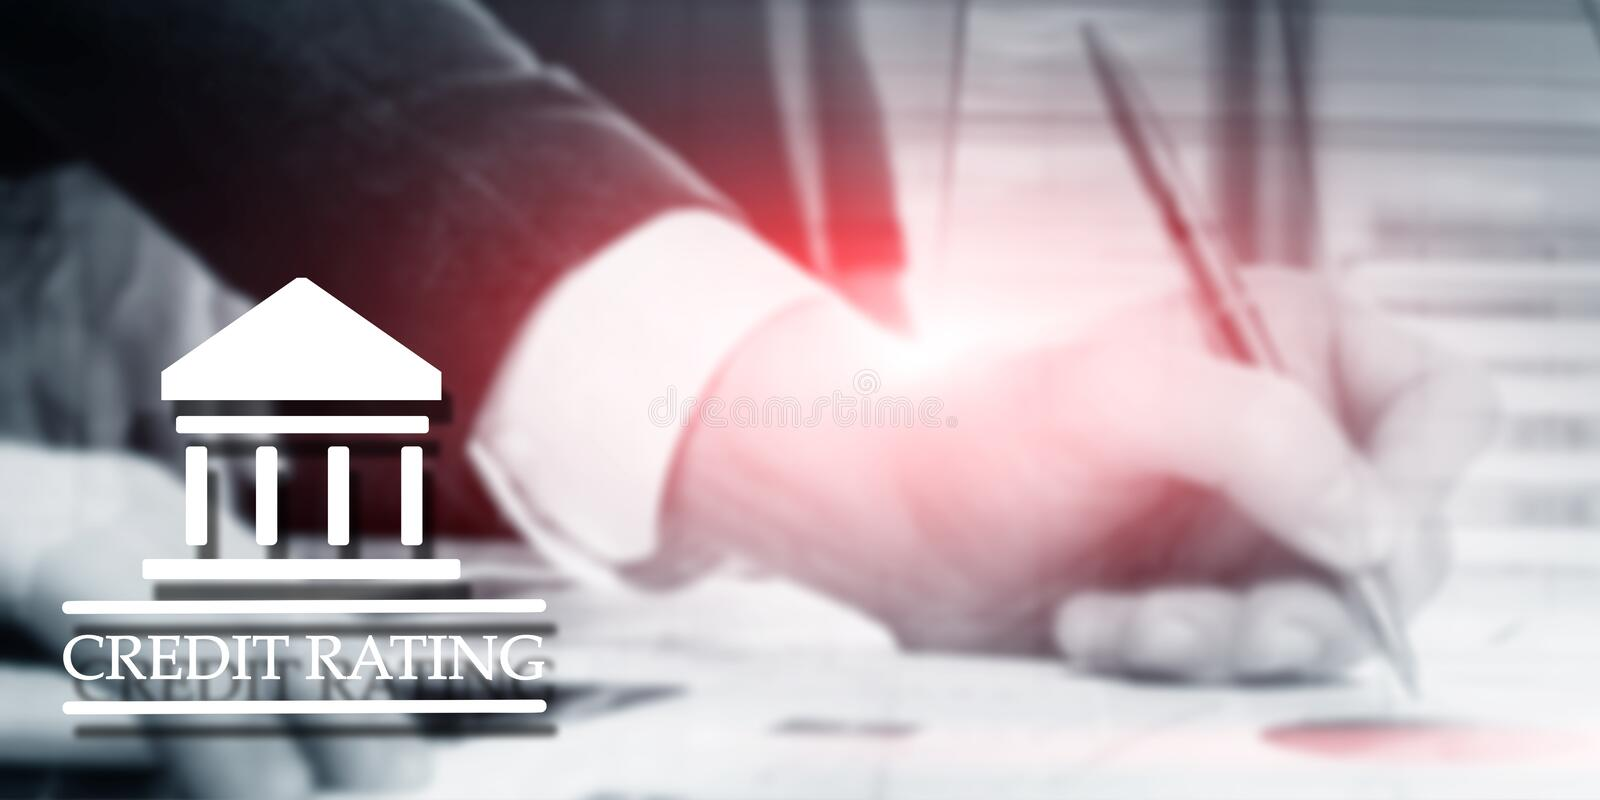 Credit Rating. Finance banking investment concept. Abstract background.  stock image